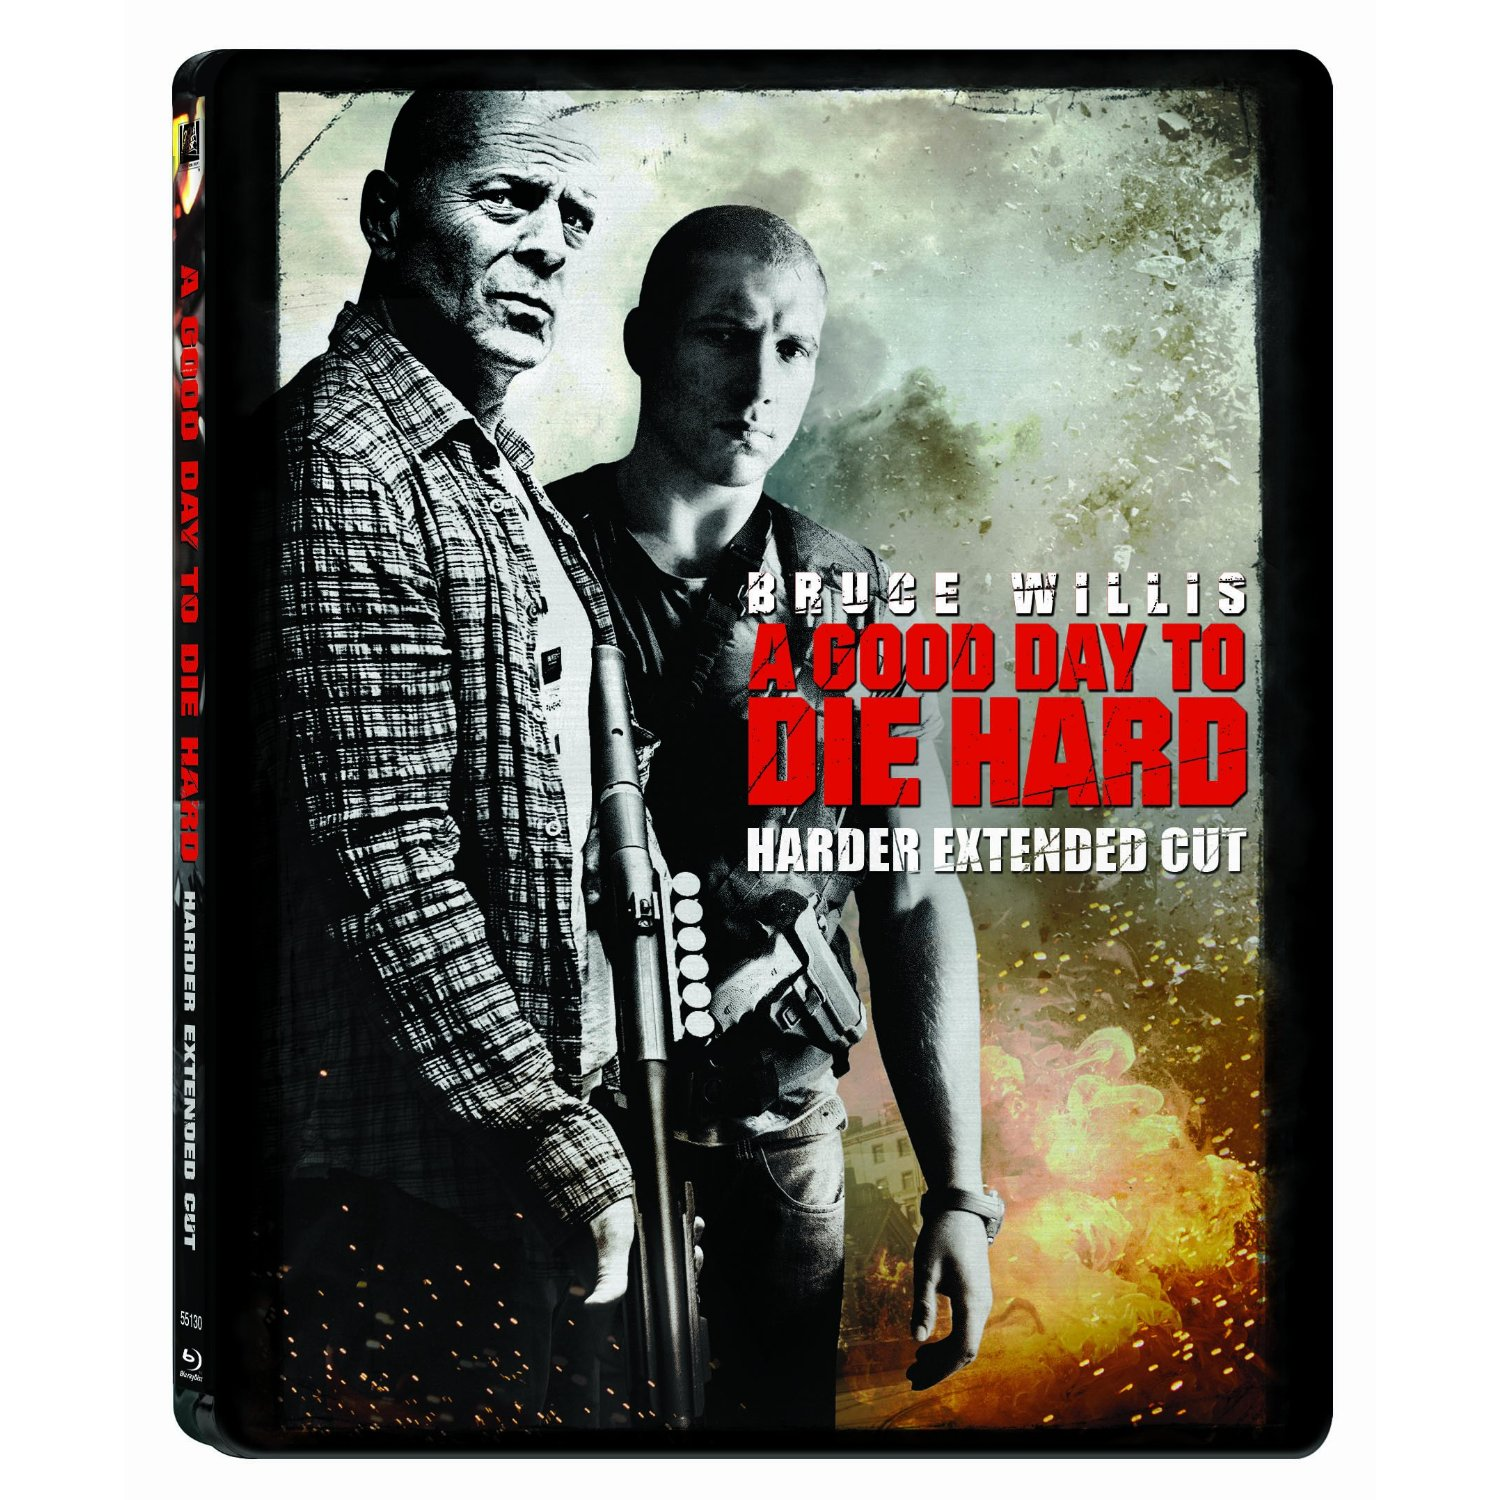 die hard buon giorno per motire limited blu-ray amazon